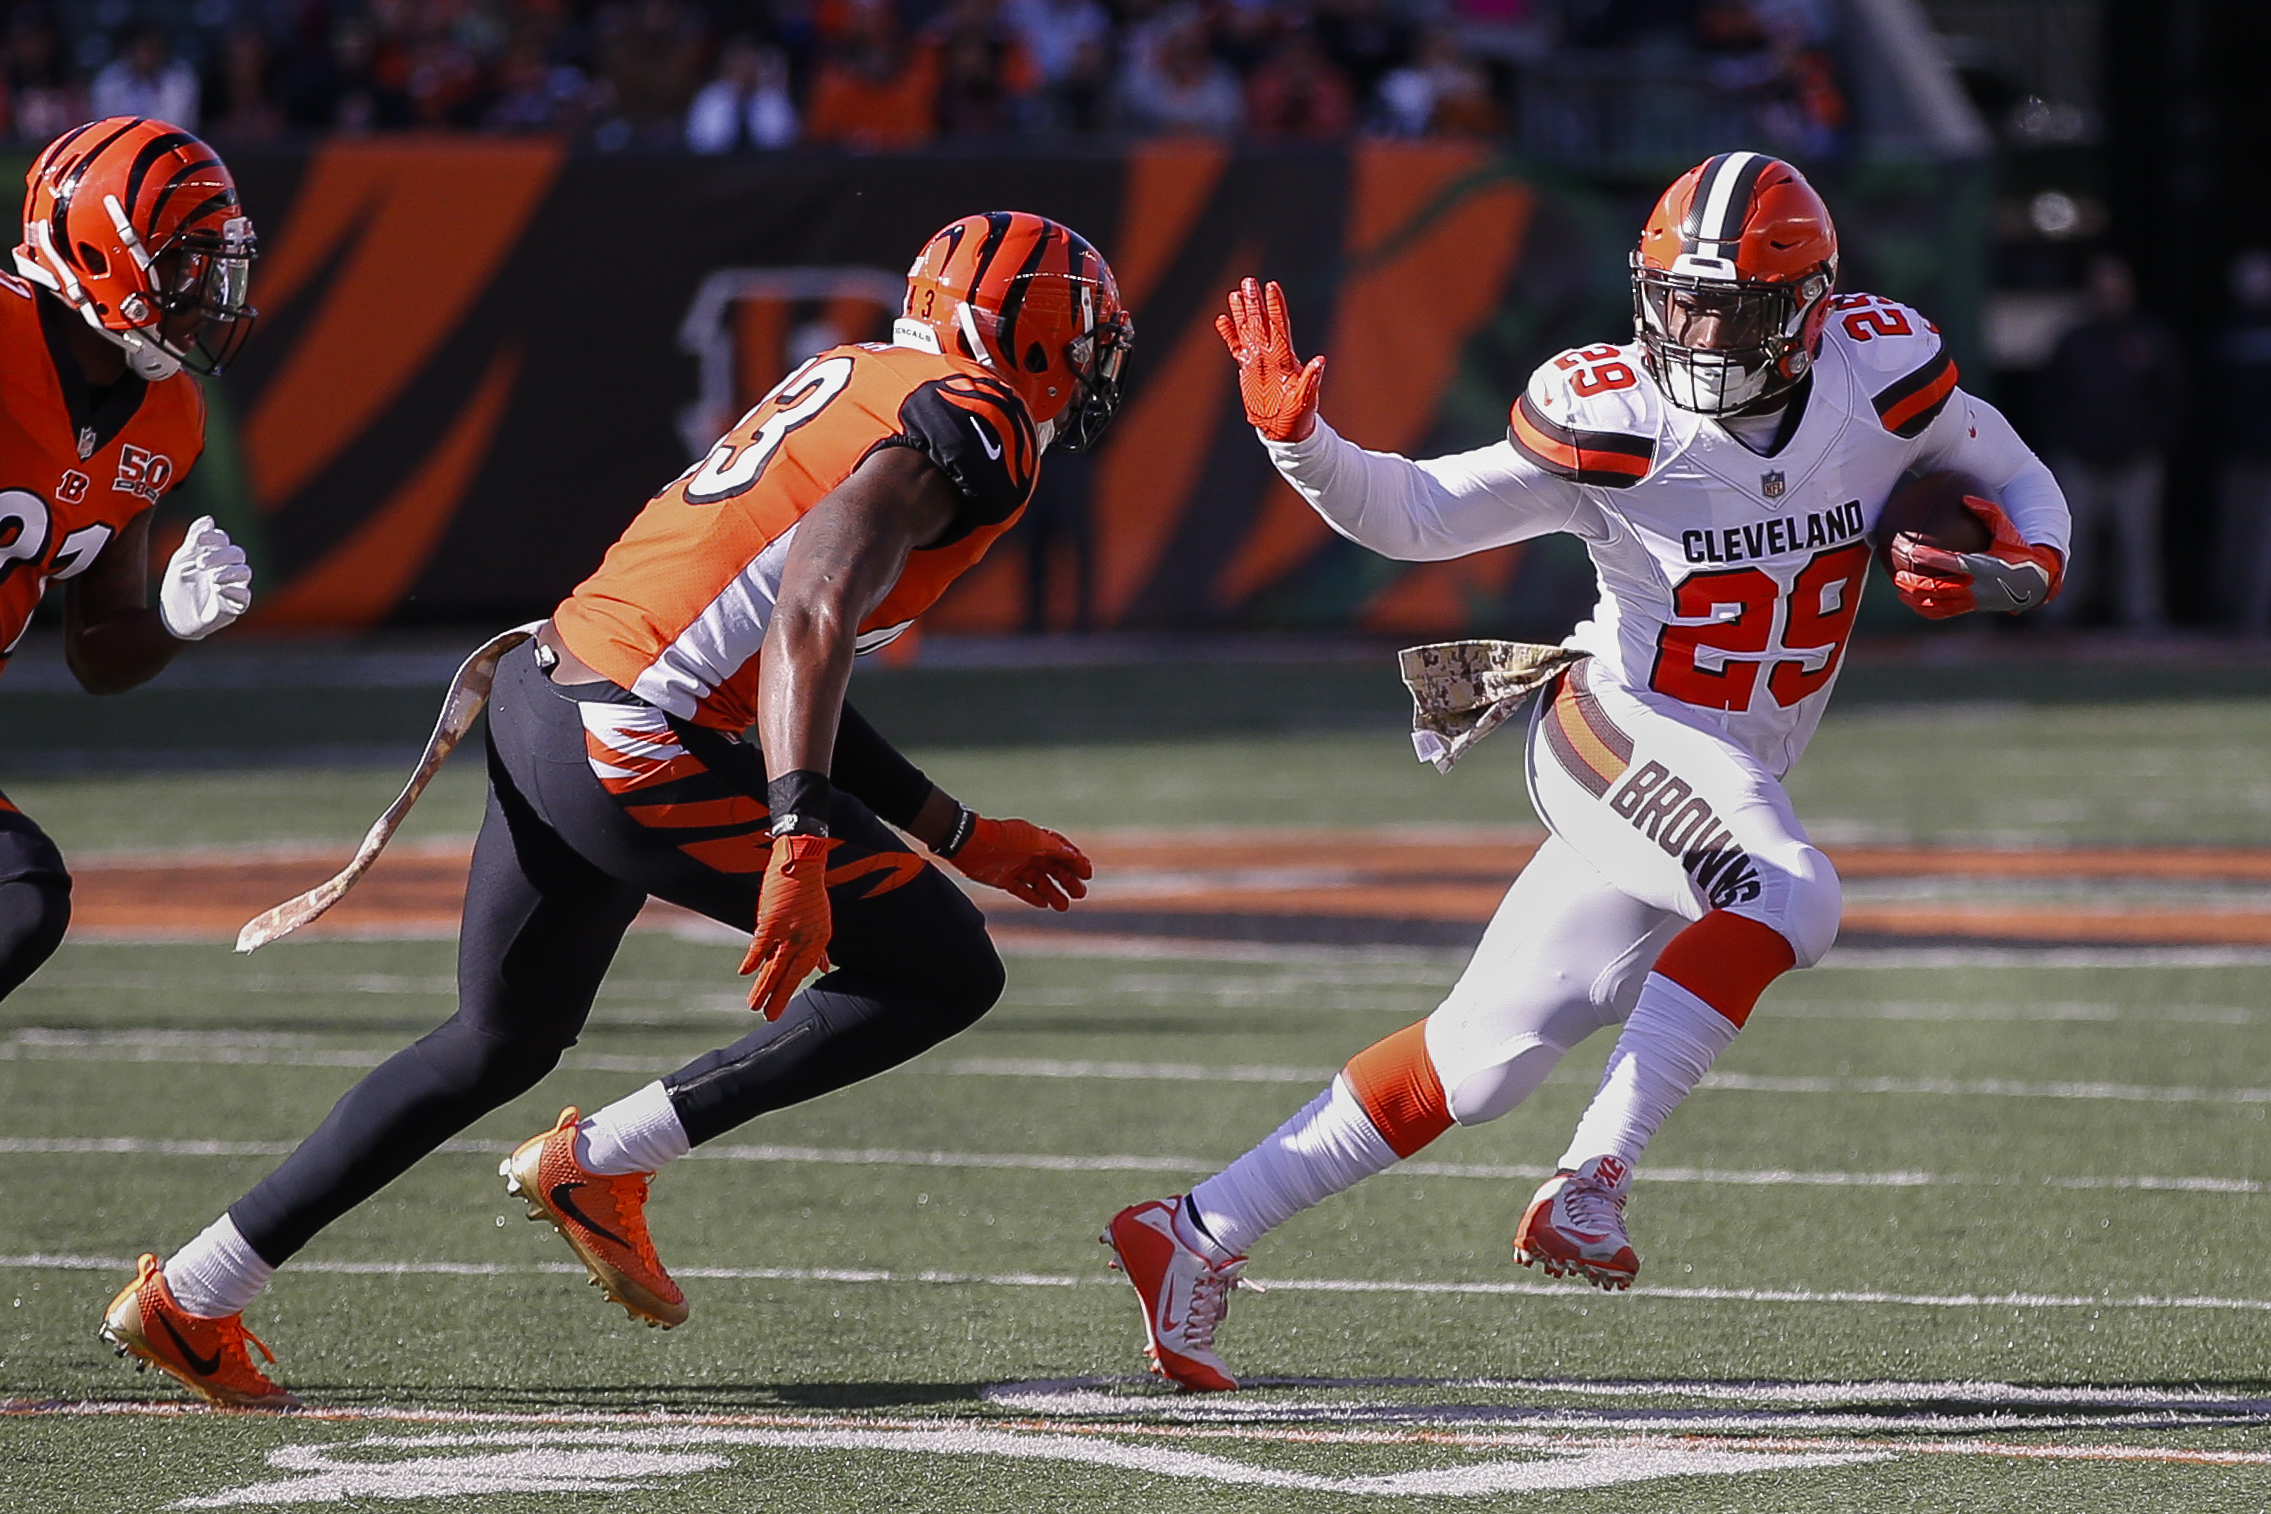 Cleveland Browns running back Duke Johnson (29) runs the ball against Cincinnati Bengals free safety George Iloka (43) in the first half of an NFL football game, Sunday, Nov. 26, 2017, in Cincinnati. (AP Photo/Gary Landers)